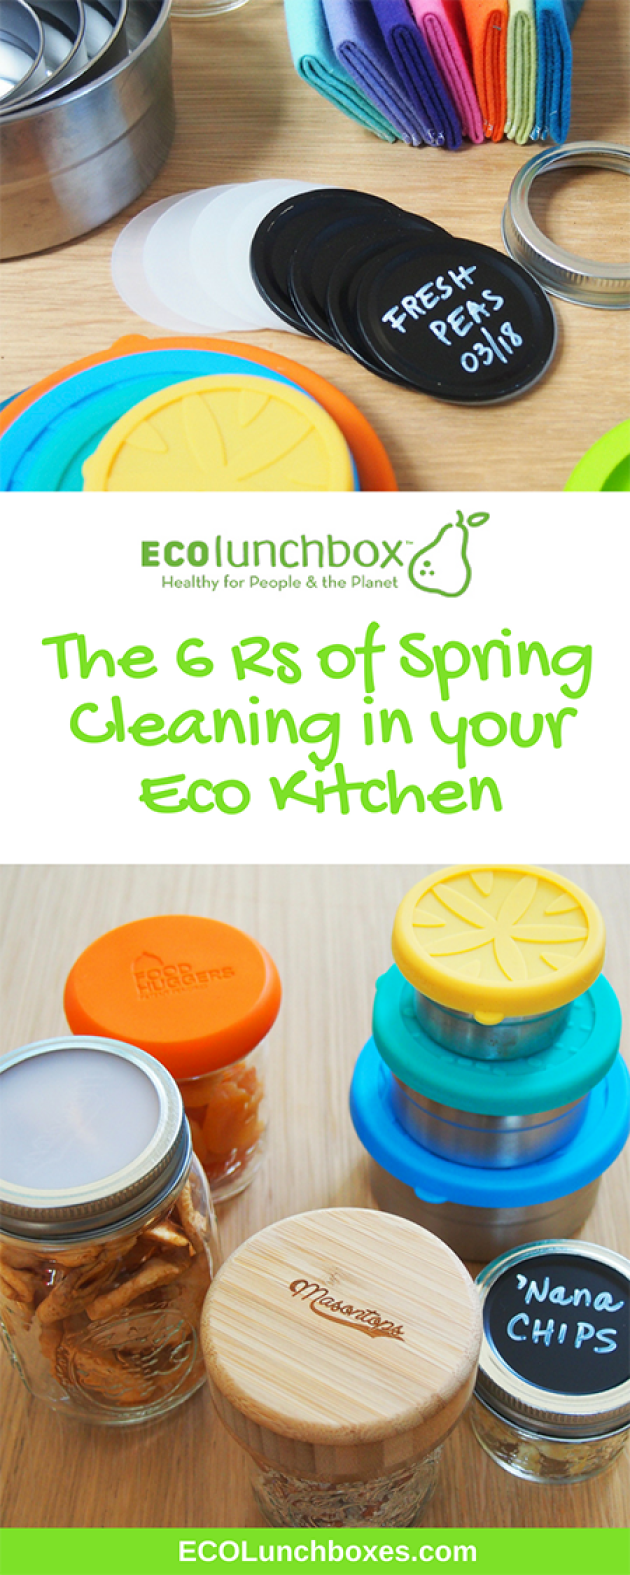 The Six Rs of Spring Cleaning in your ECO kitchen